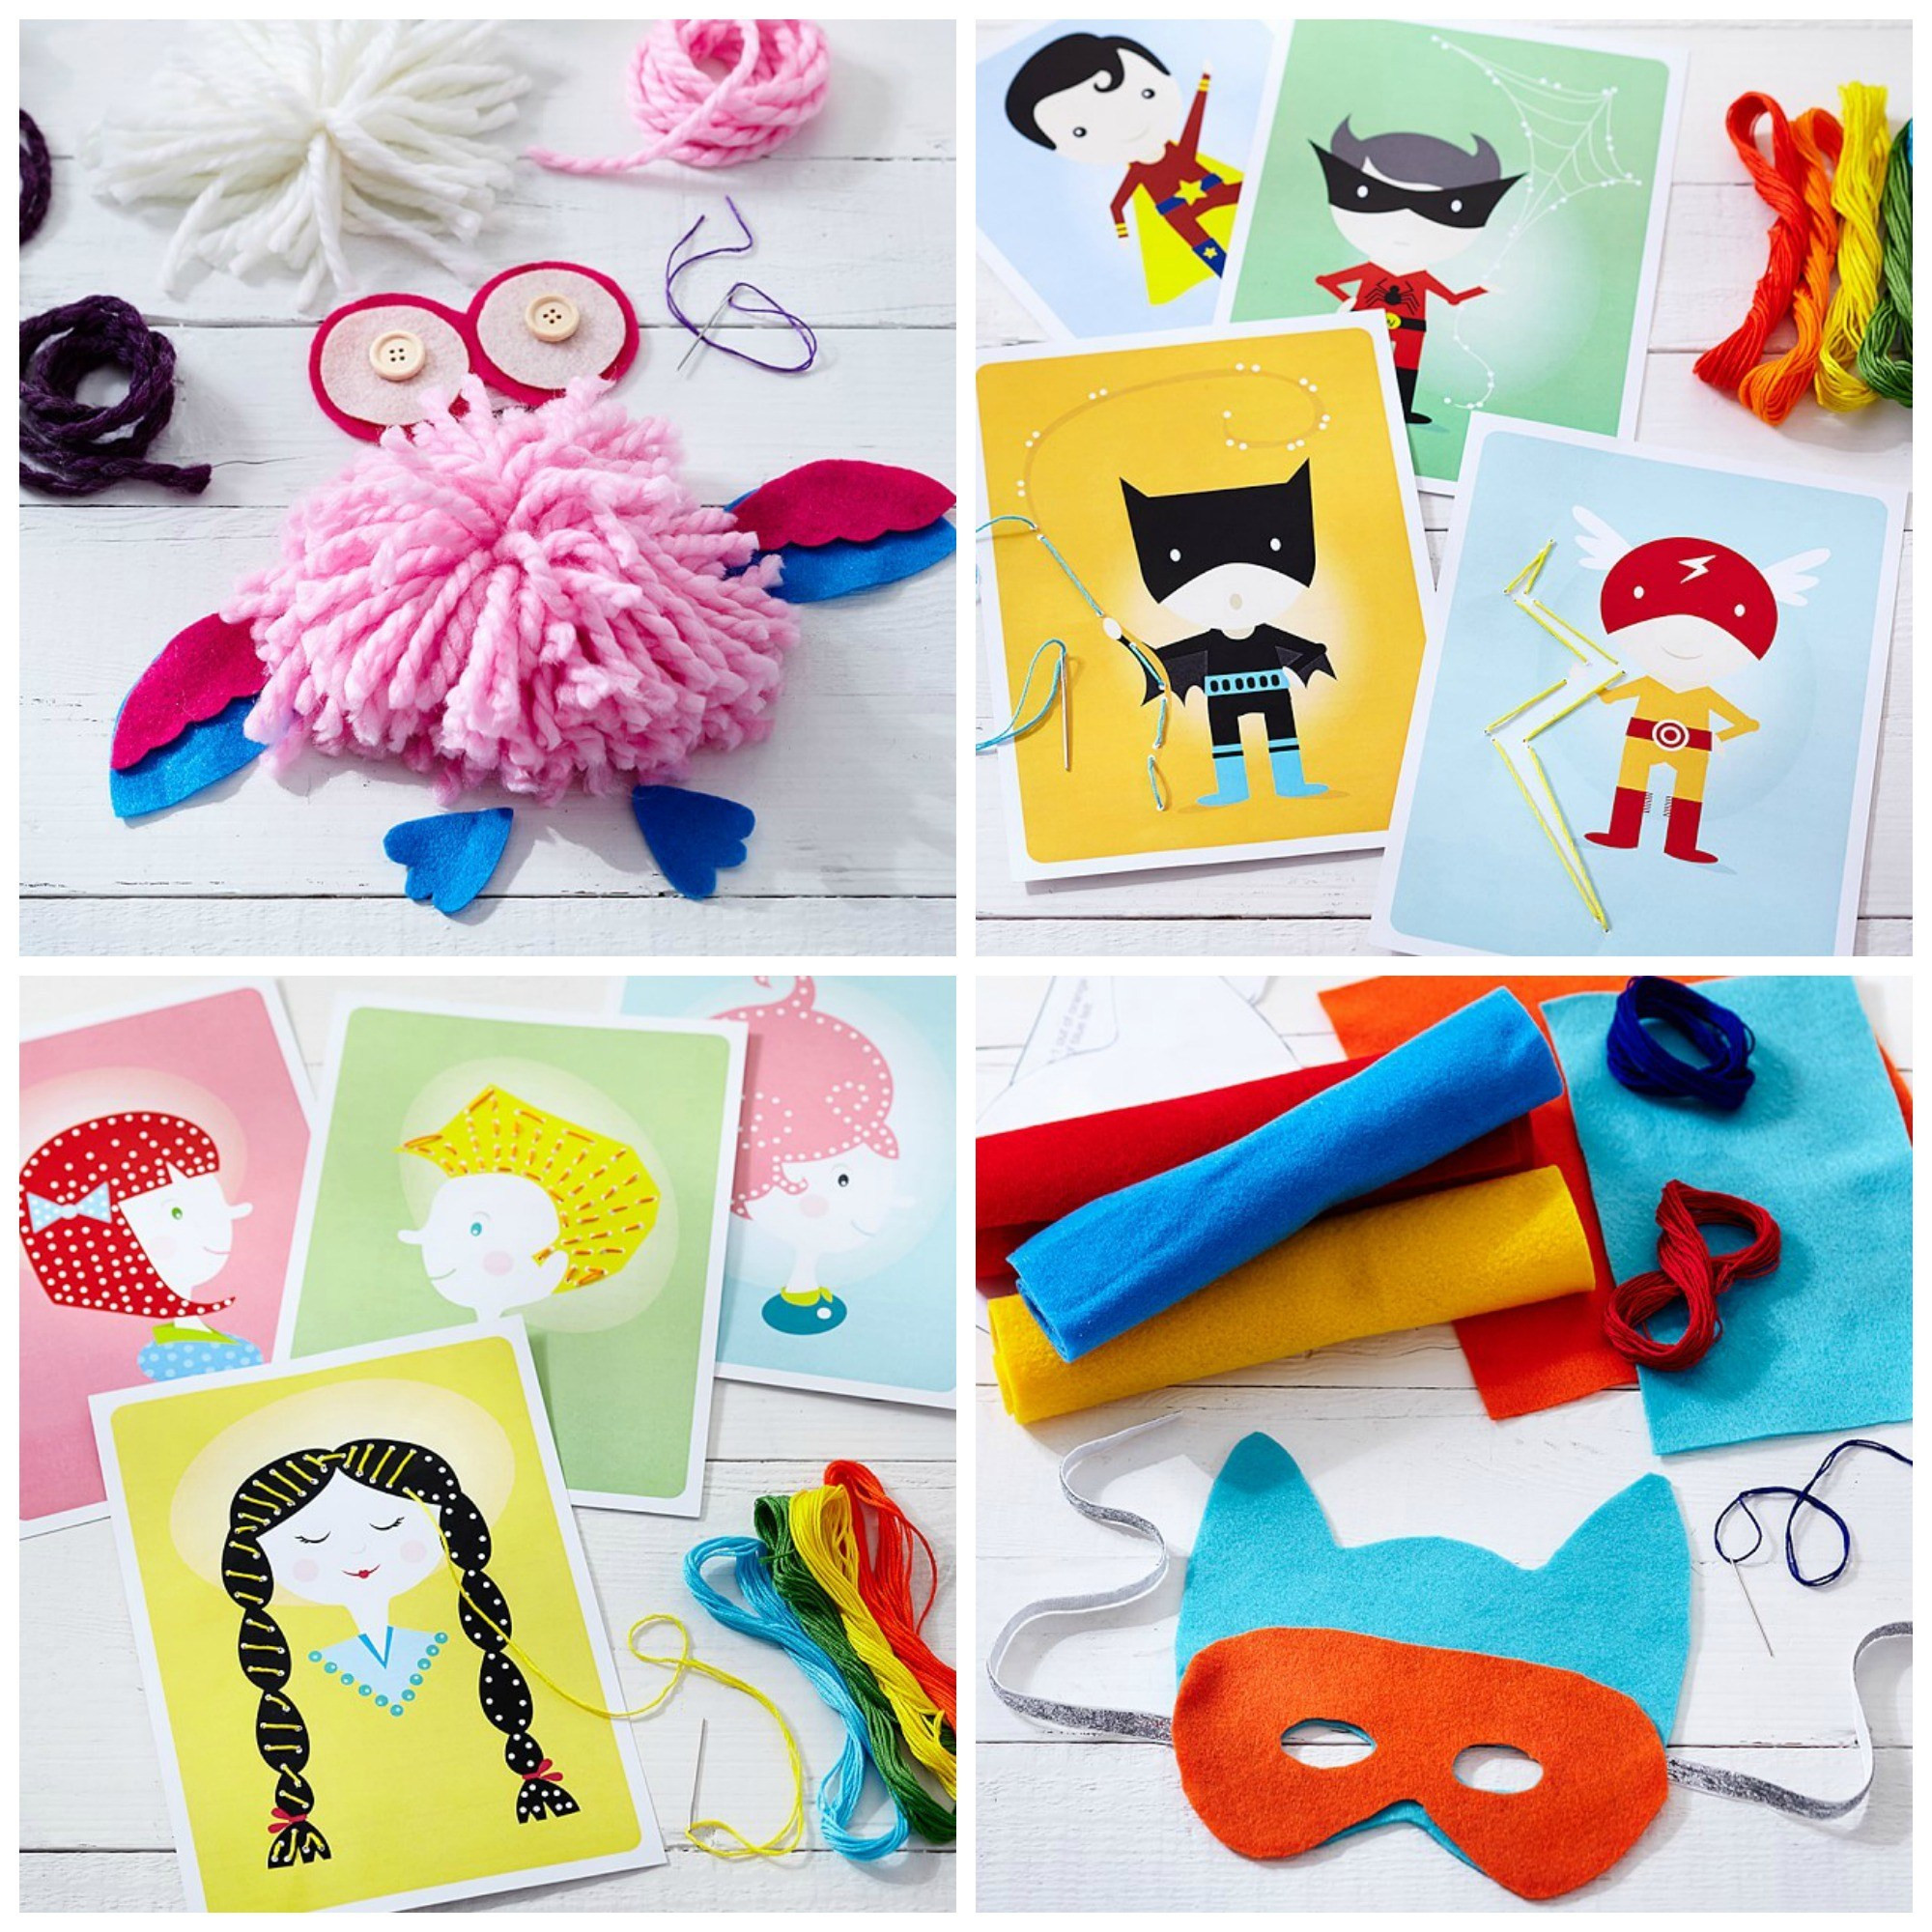 Best ideas about DIY Craft Kits For Kids . Save or Pin Pottery Barn Kids & Handmade Charlotte DIY Craft Kit Event Now.